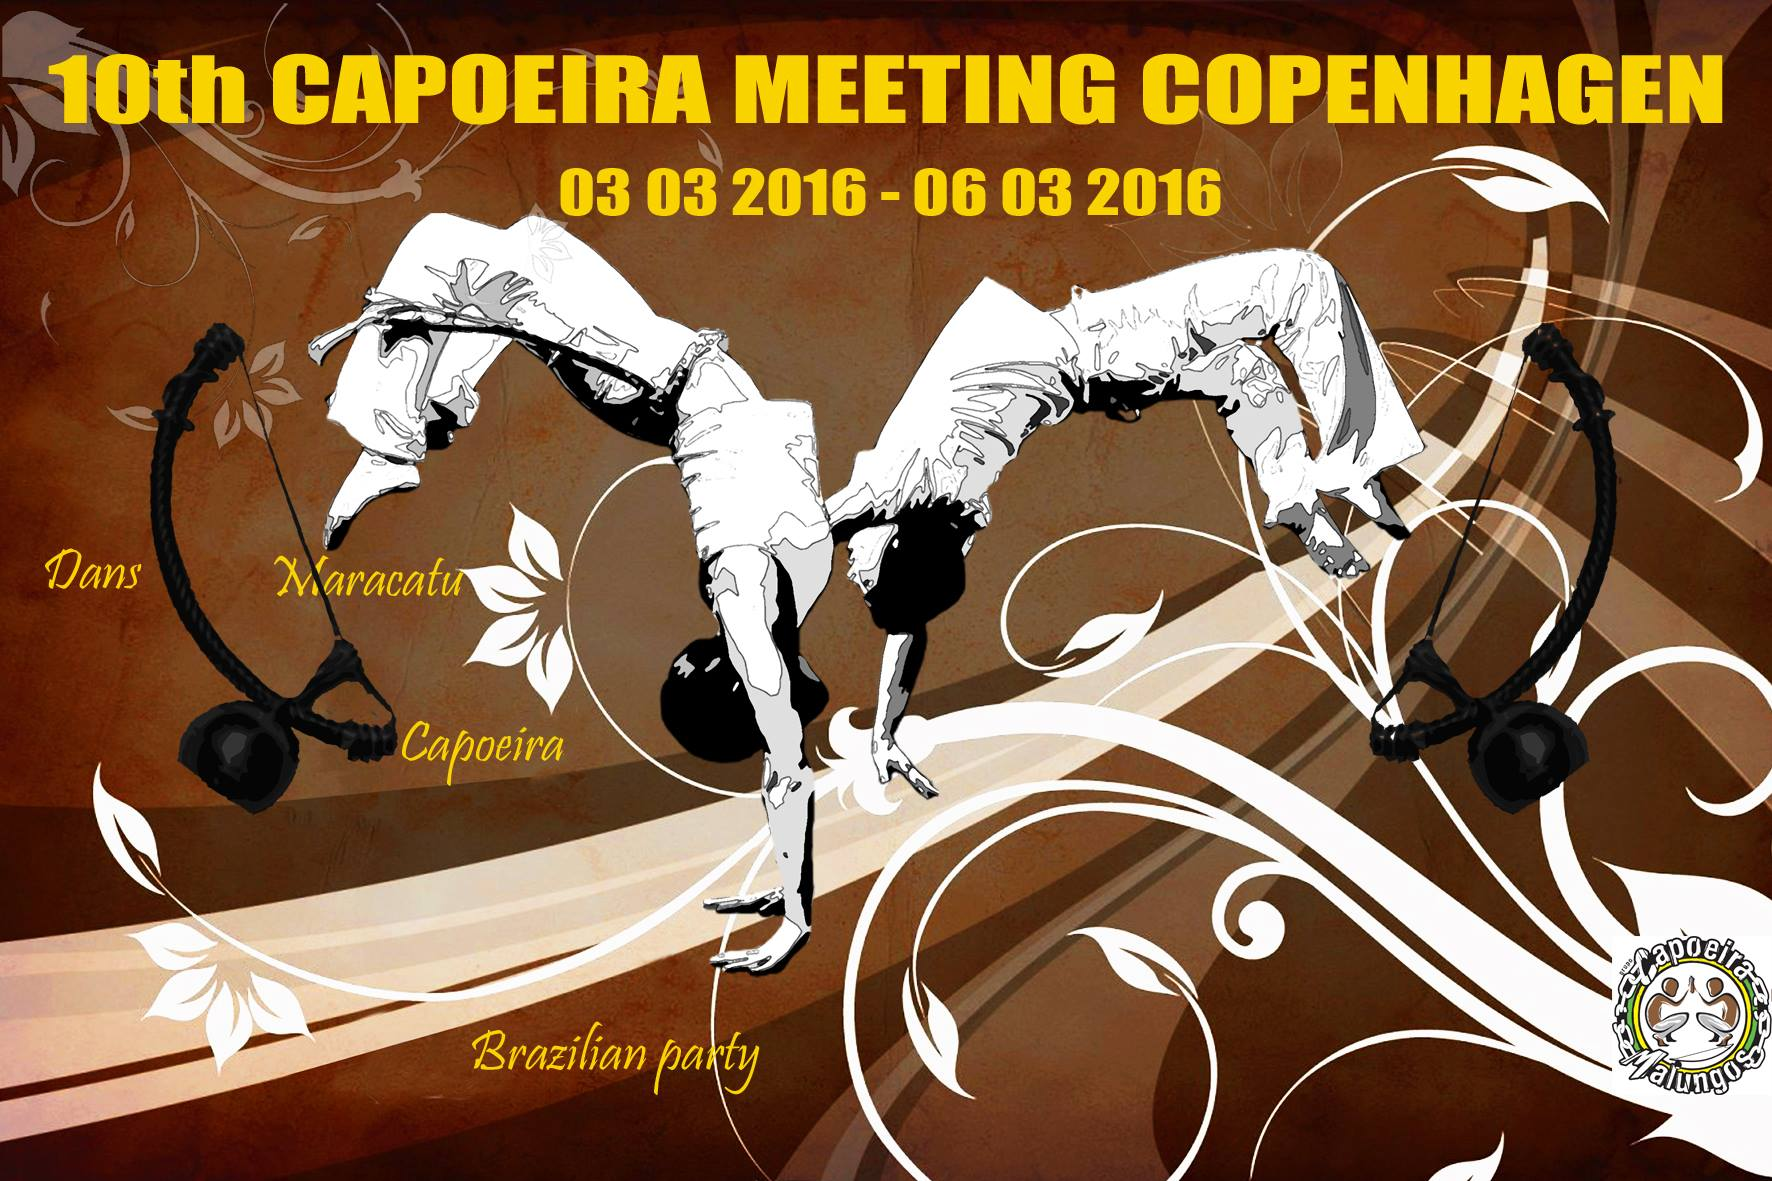 10th capoeira meeting